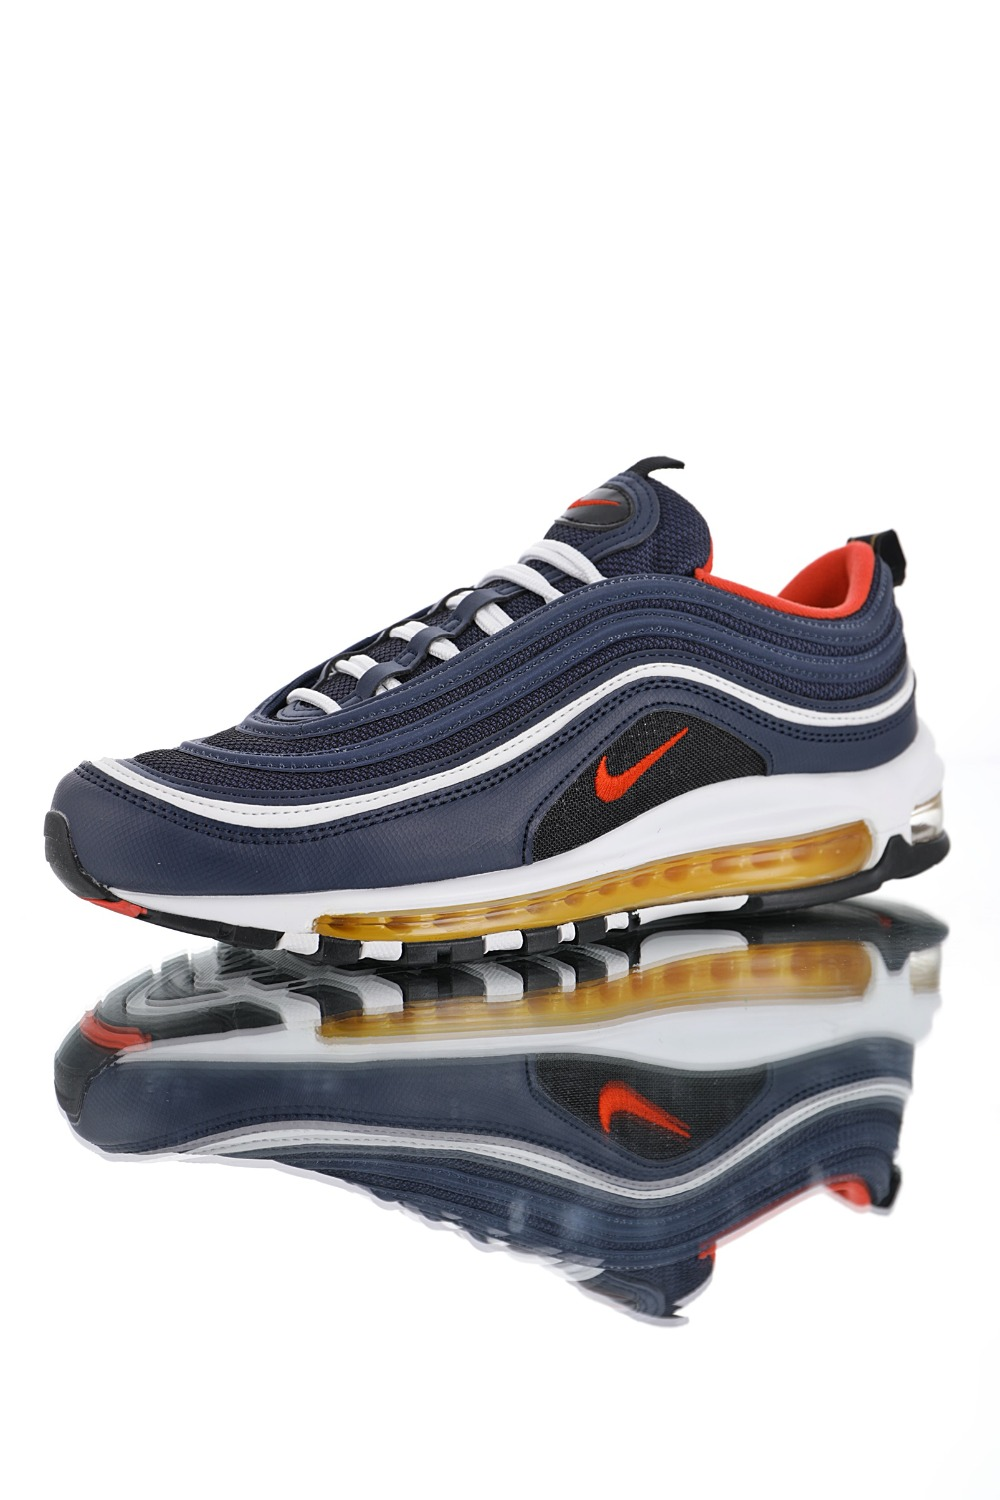 pretty nice 30f31 7f549 US $173.33 |2018 RELEASE New Arrival Nike Air Max 97 Men's and Women  Running Shoes,Official Breathable Sports Sneakers 921826 403-in Running  Shoes ...